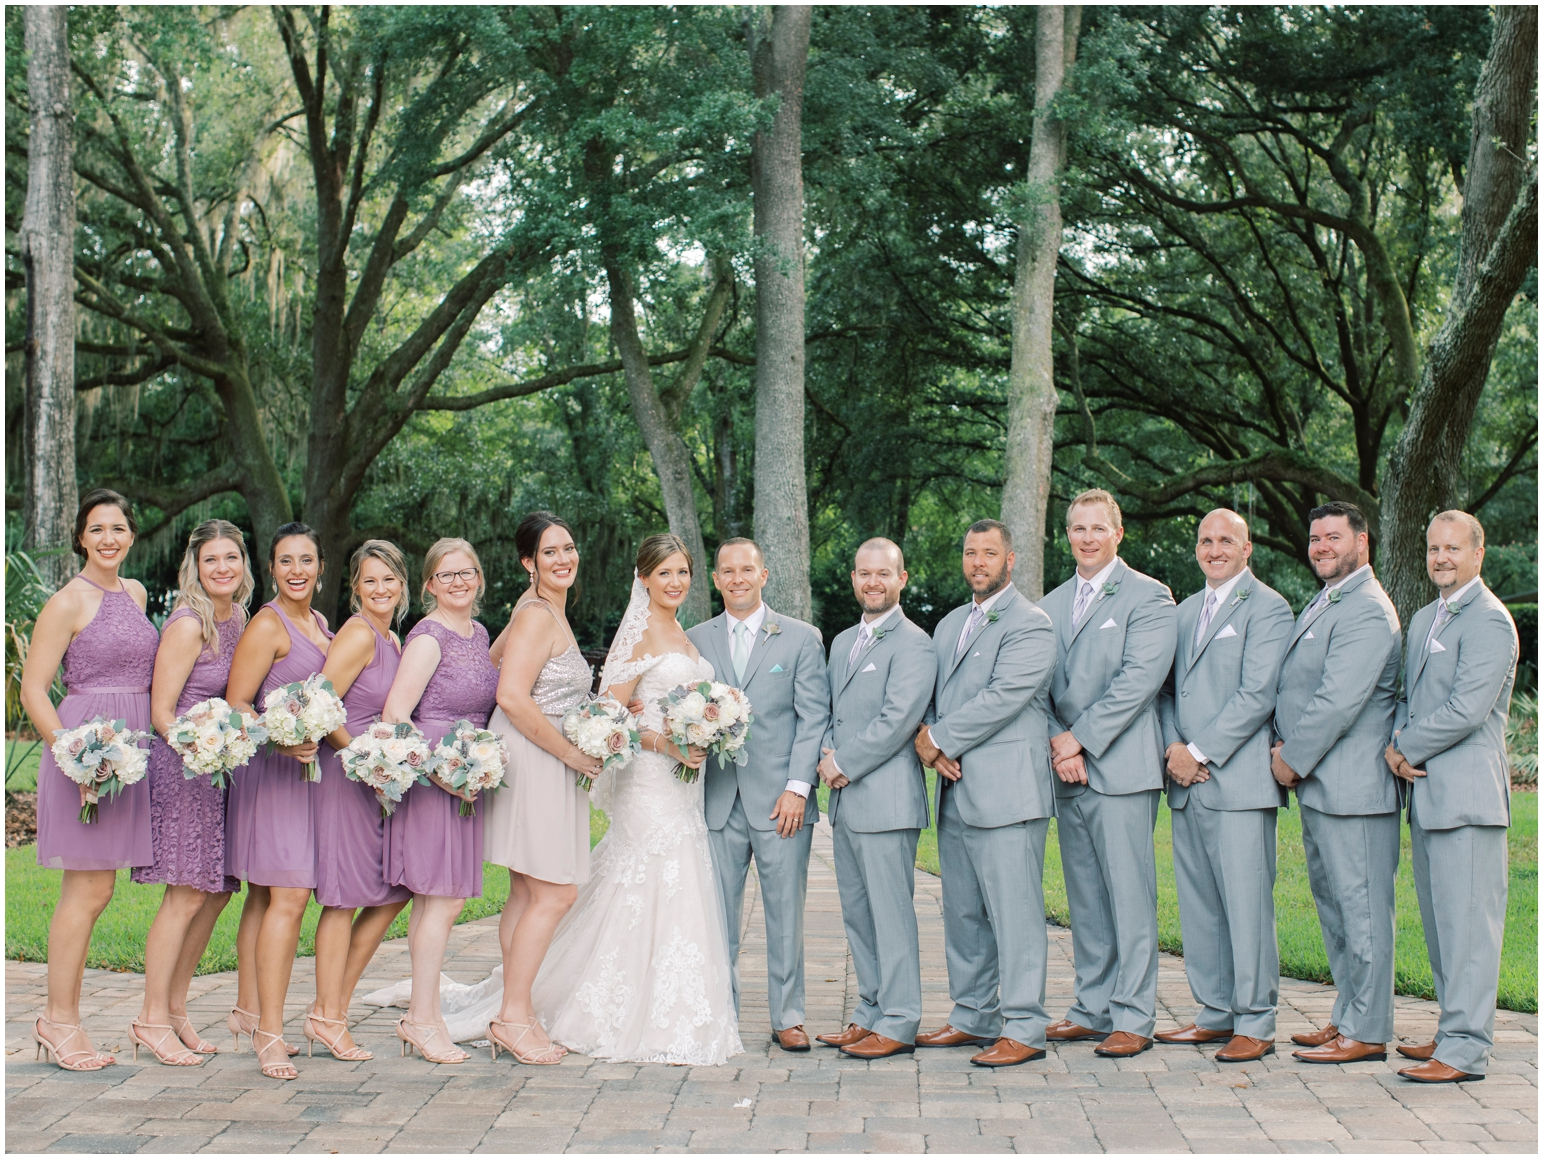 Lisa Silva Photography- Jacksonville, St Augustine, Fernandina Beach, Amelia Island, Ponte Vedra Beach, North East Florida Fine Art Film Photographer- Ashley and Shawn's wedding at bowing oaks plantation_0071.jpg